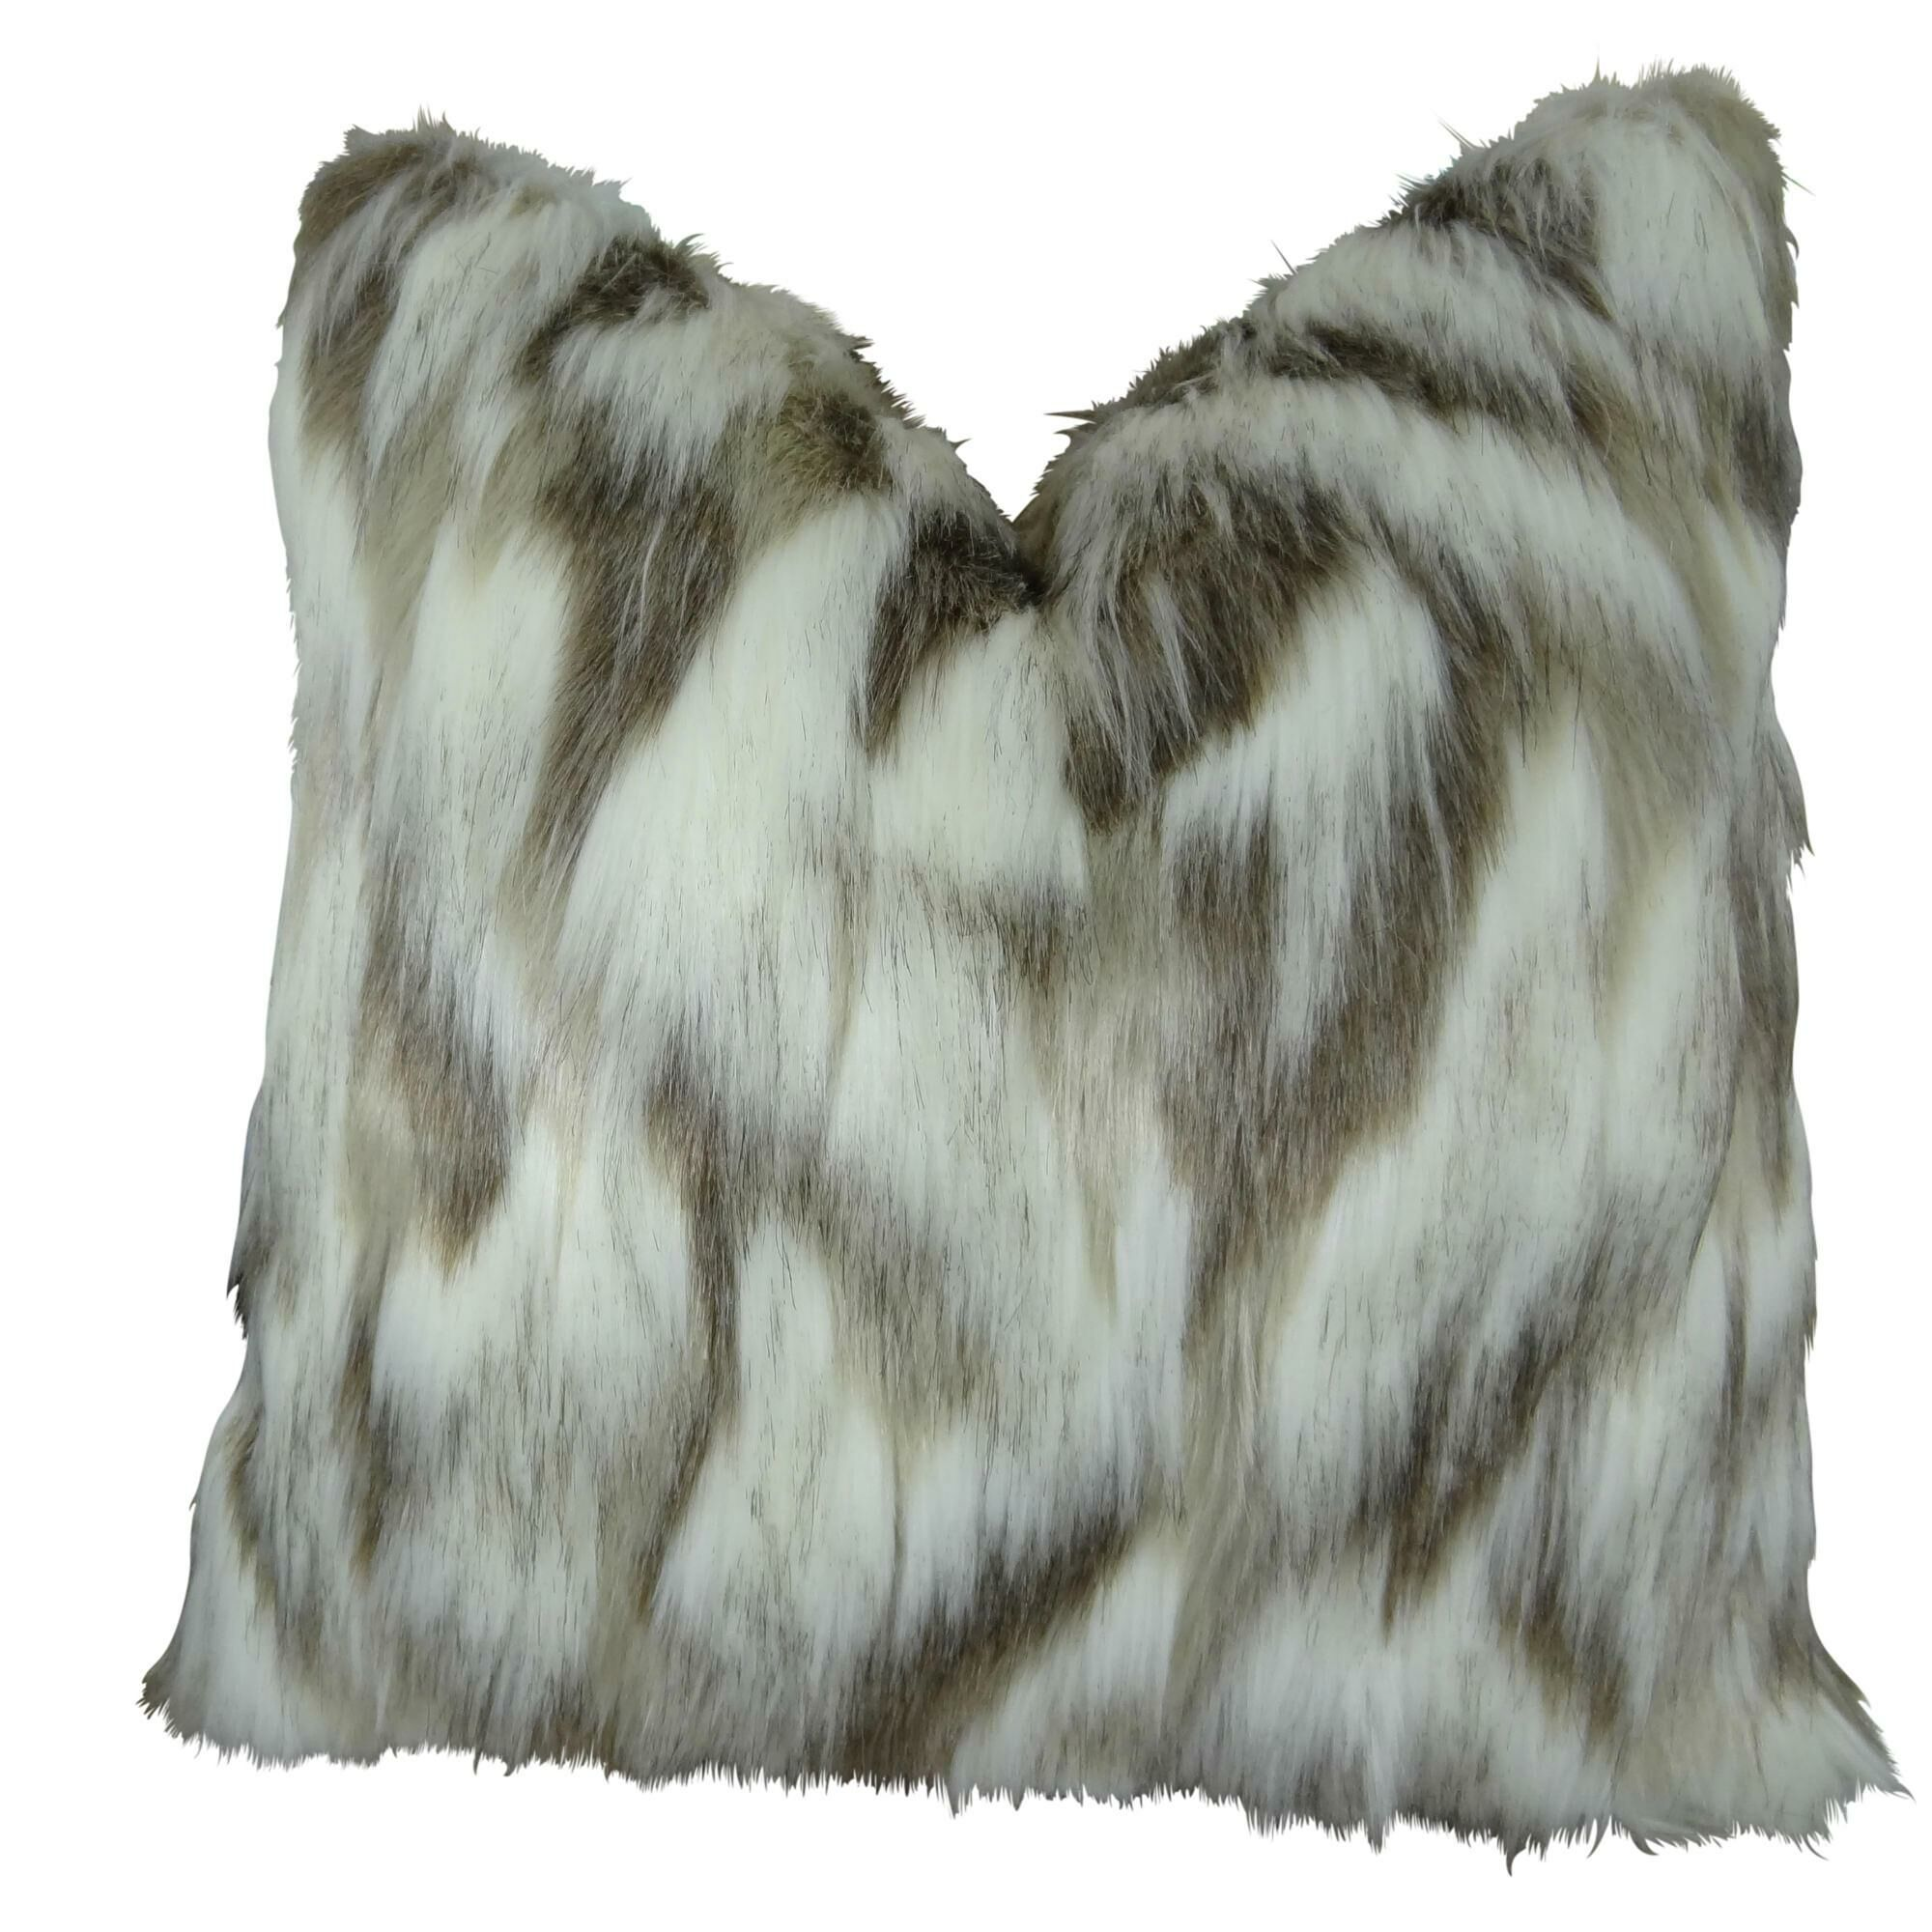 Wafer Luxury Fox Faux Fur Pillow Fill Material: H-allrgnc Polyfill, Size: 20